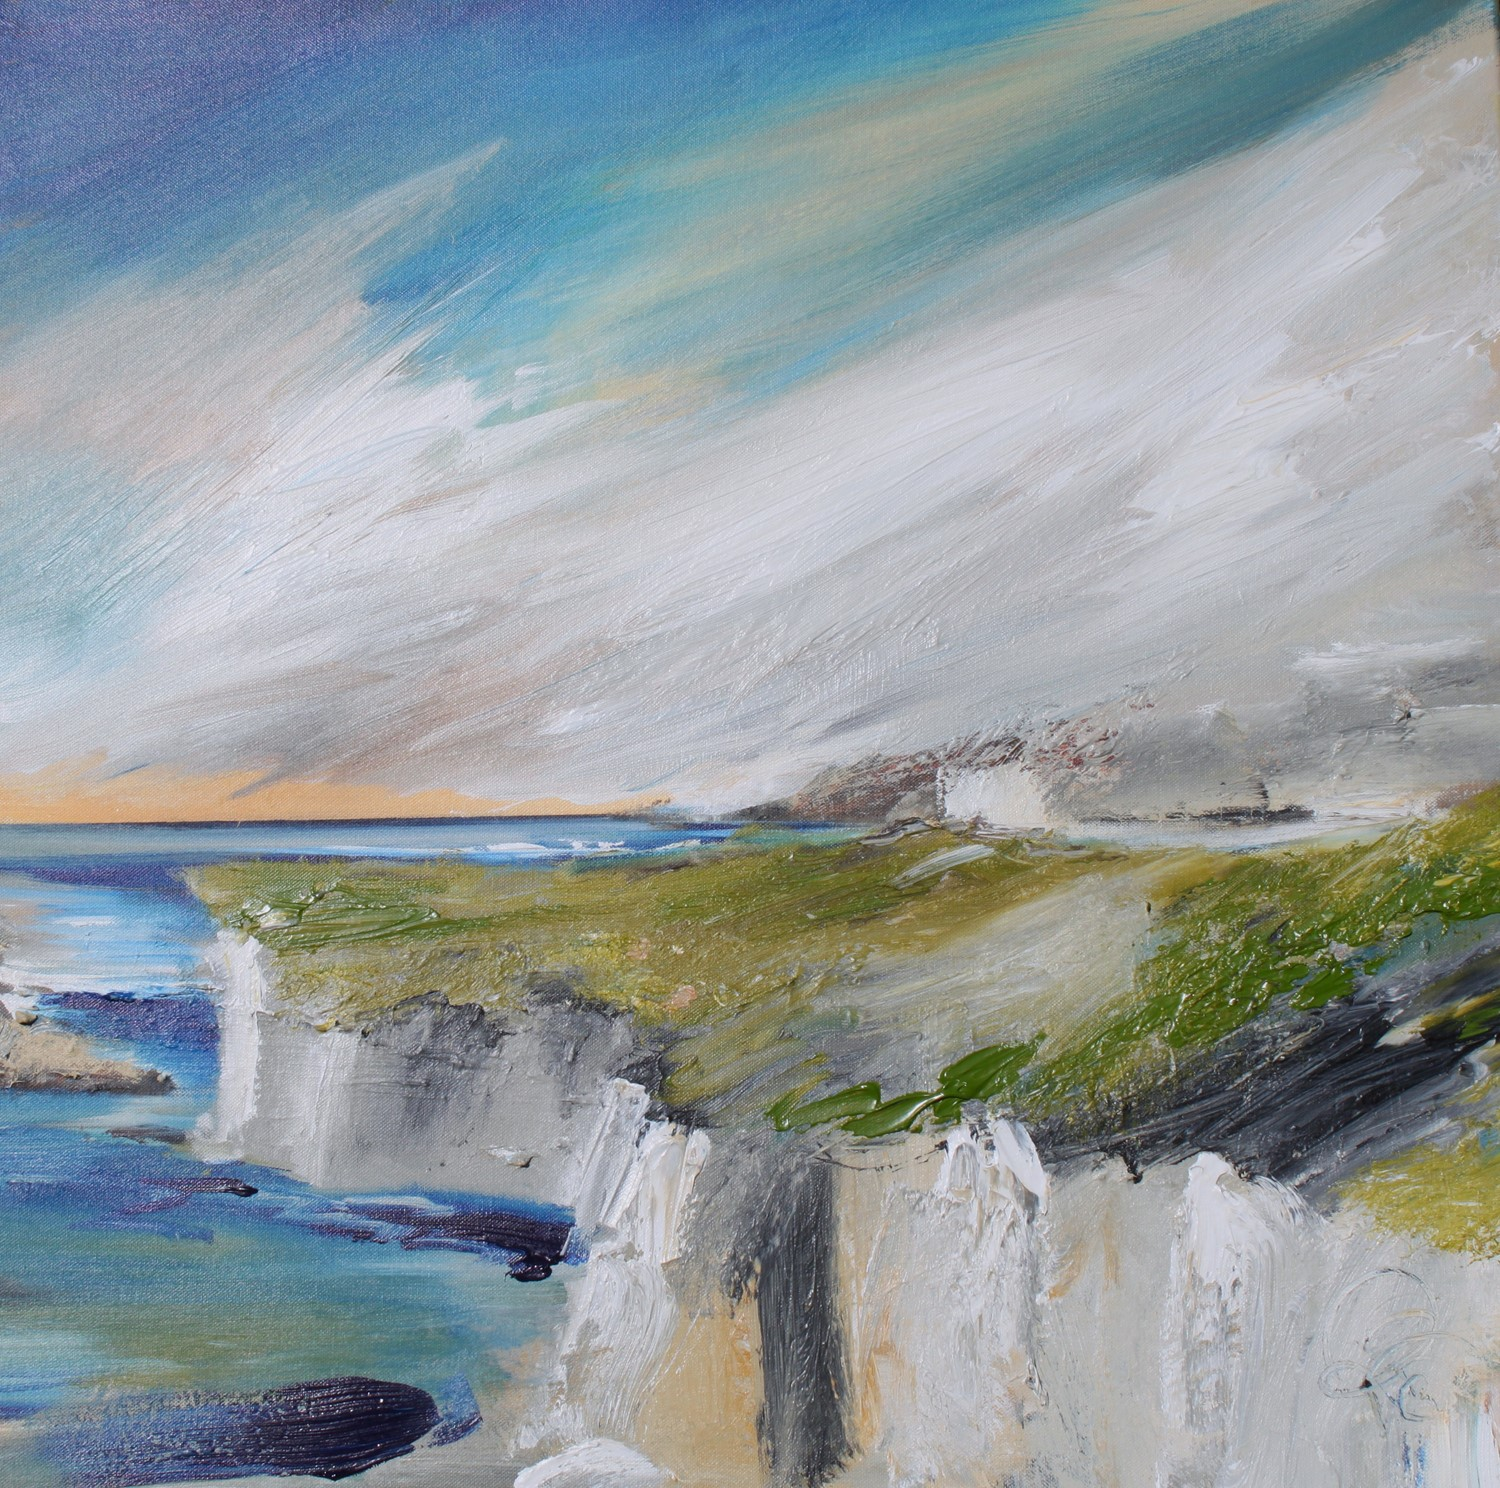 'Blustery at the Cliffs' by artist Rosanne Barr